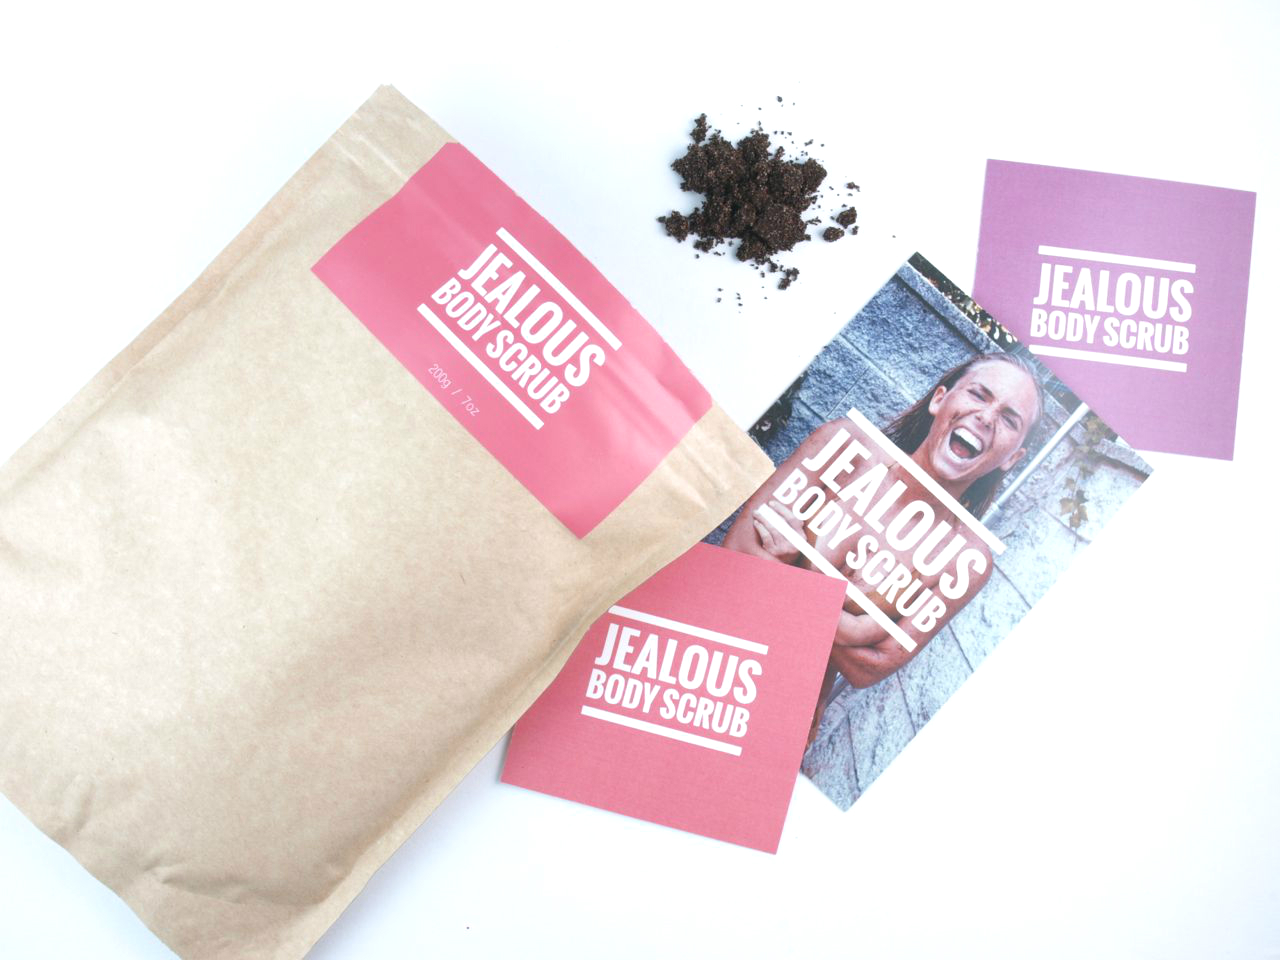 Jealous Body Scrub New Almond + Coffee Scrub: Review